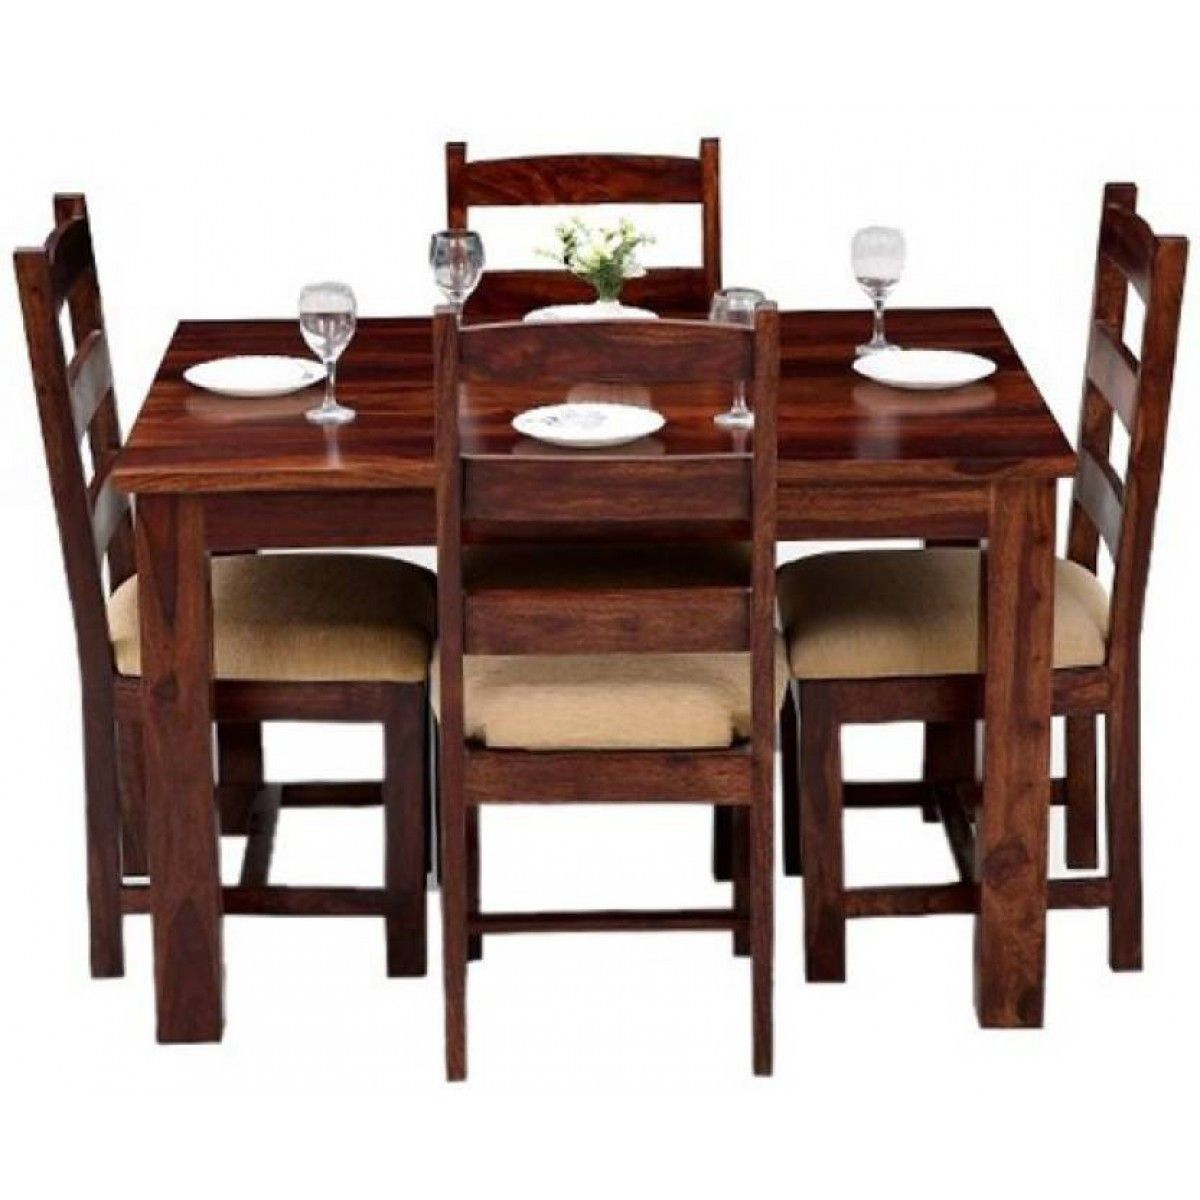 Gorevizon Rose Wooden 4 Seater Dining Table Set 4 Seater Dining Table Four Seater Dining Table Wooden Dining Table Set